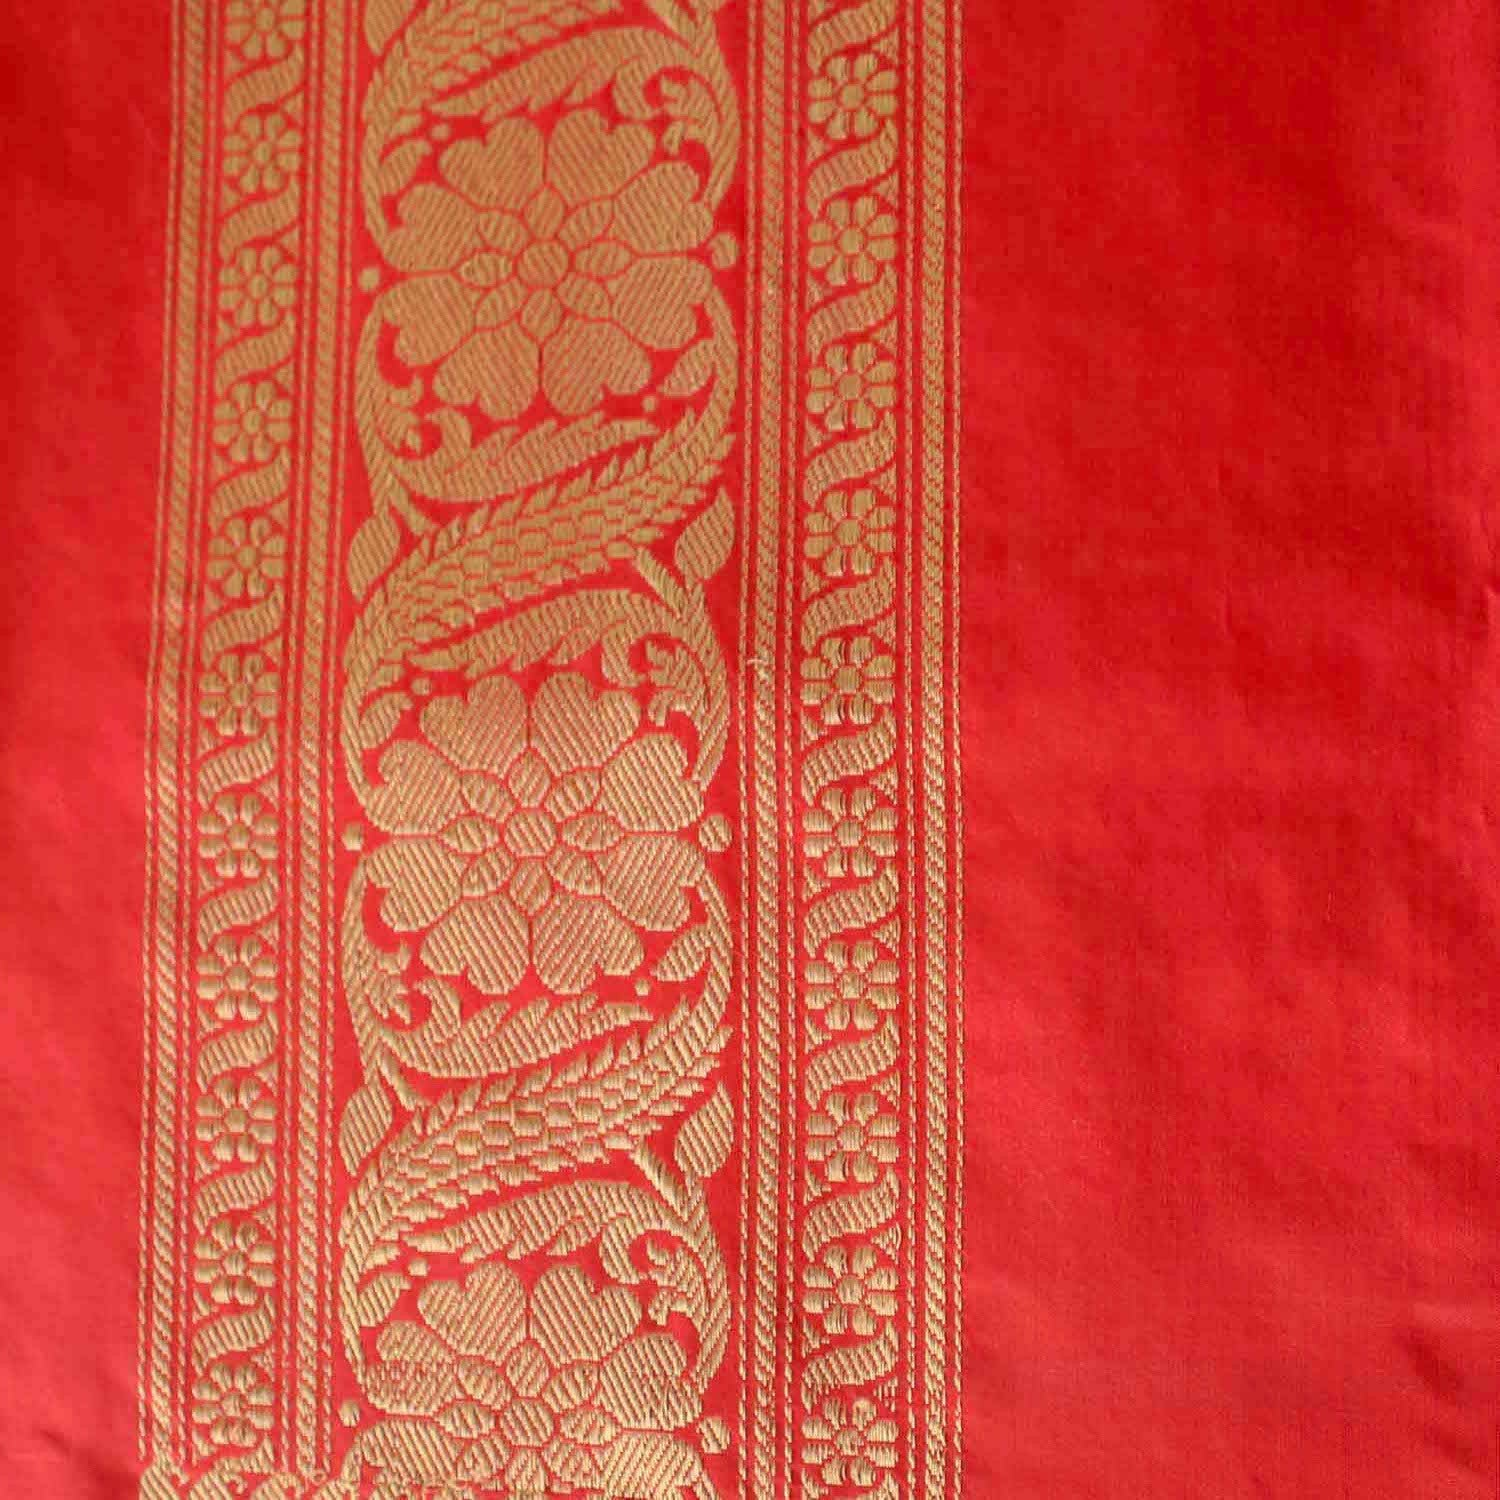 Red Pure Katan Silk Banarasi Handwoven Saree - Tilfi - 4